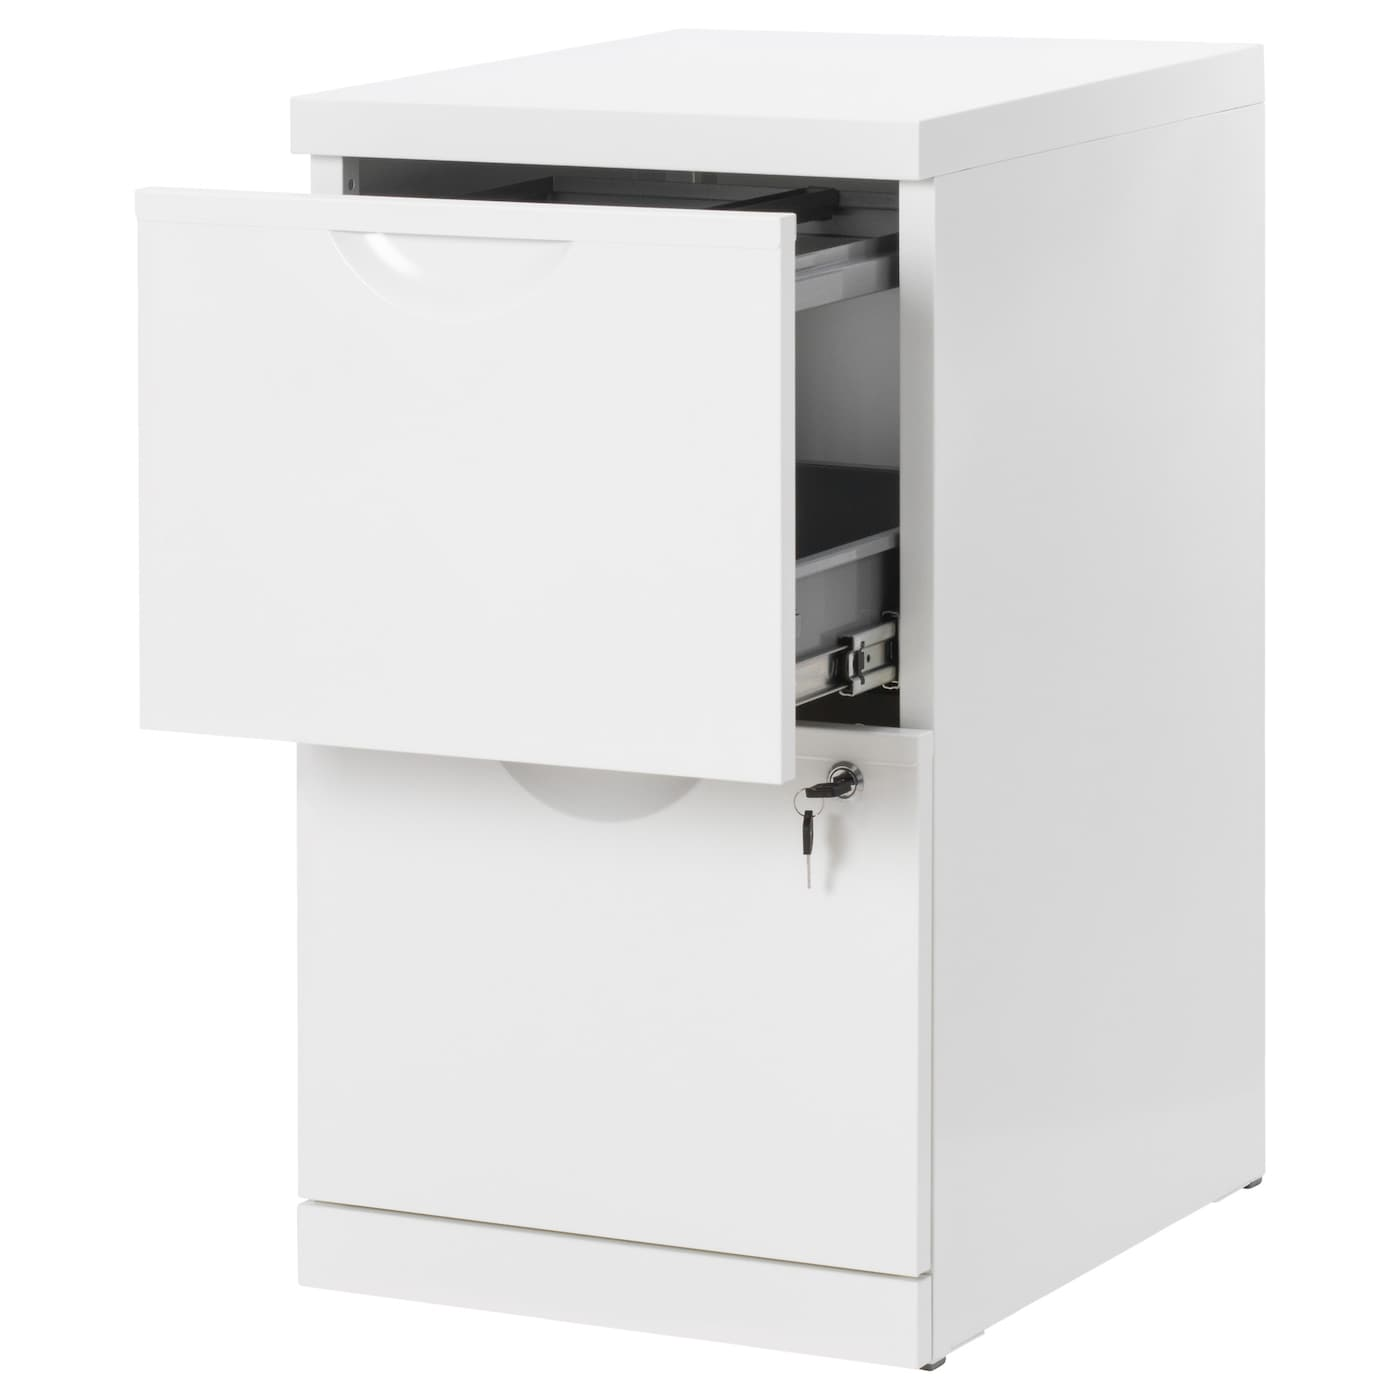 IKEA ERIK file cabinet Drawers for drop files make it easy to sort and store your papers.